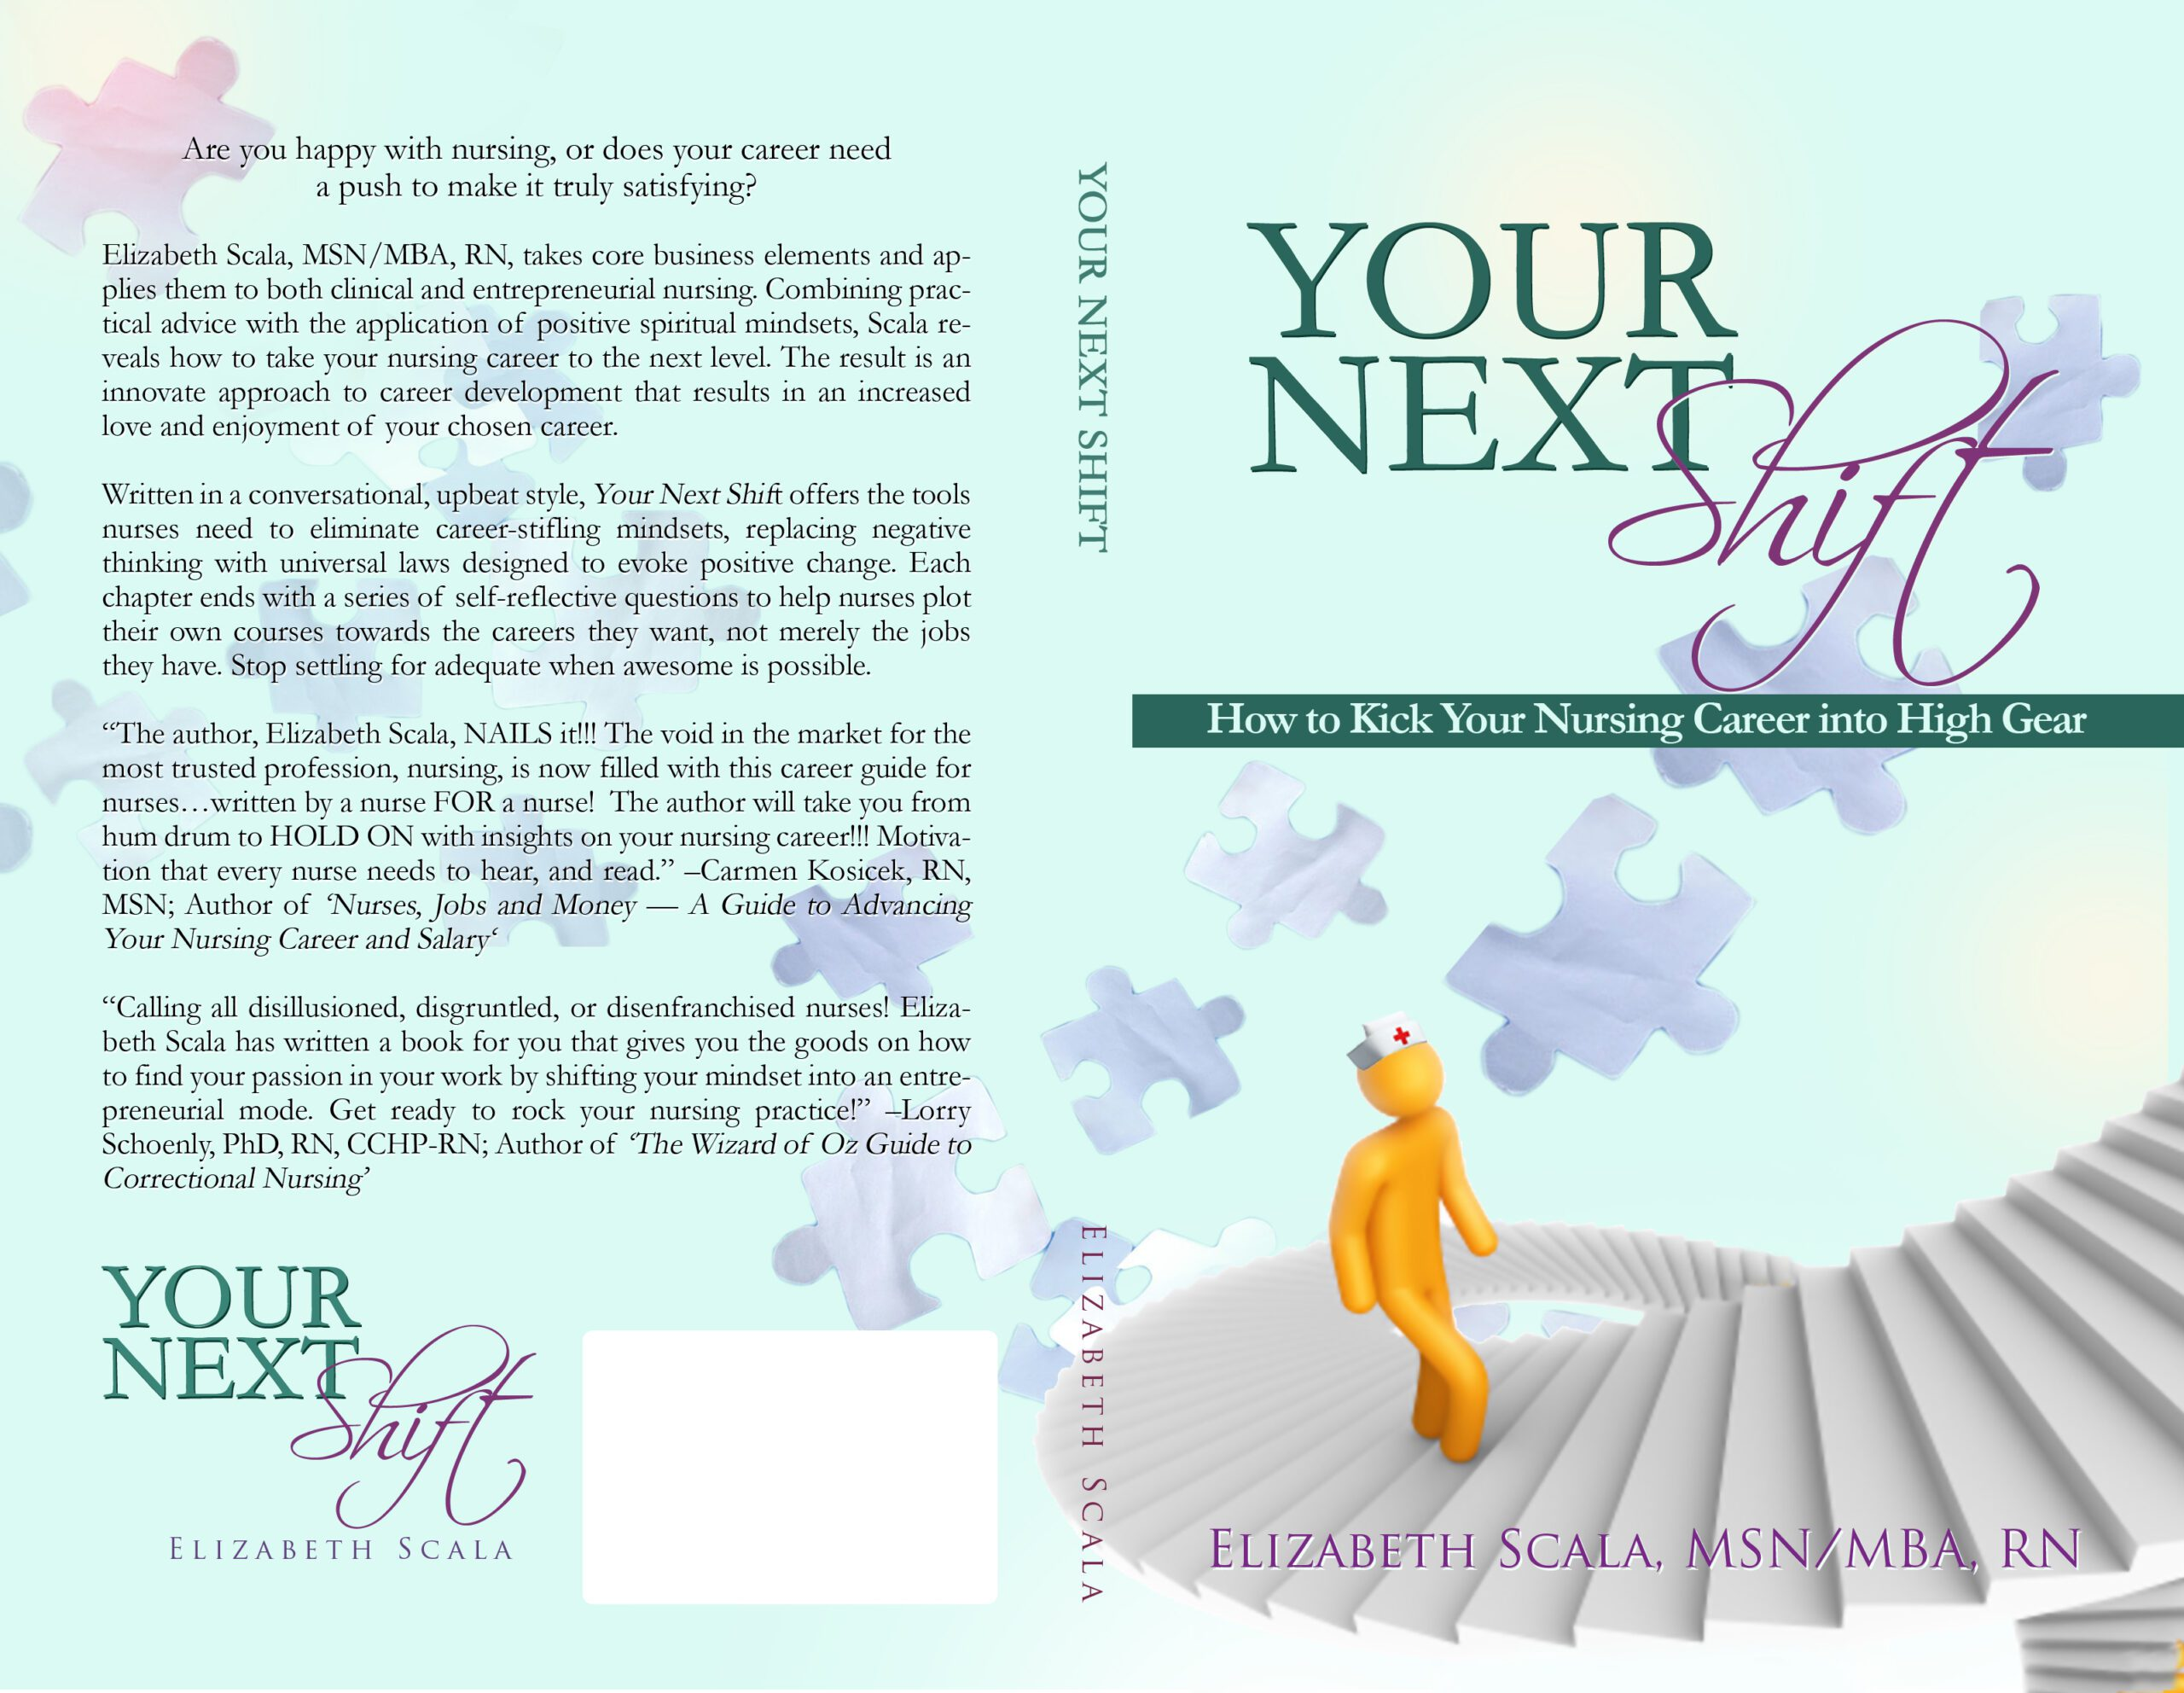 your next shift the book elizabeth scala msn mba rn the back cover image